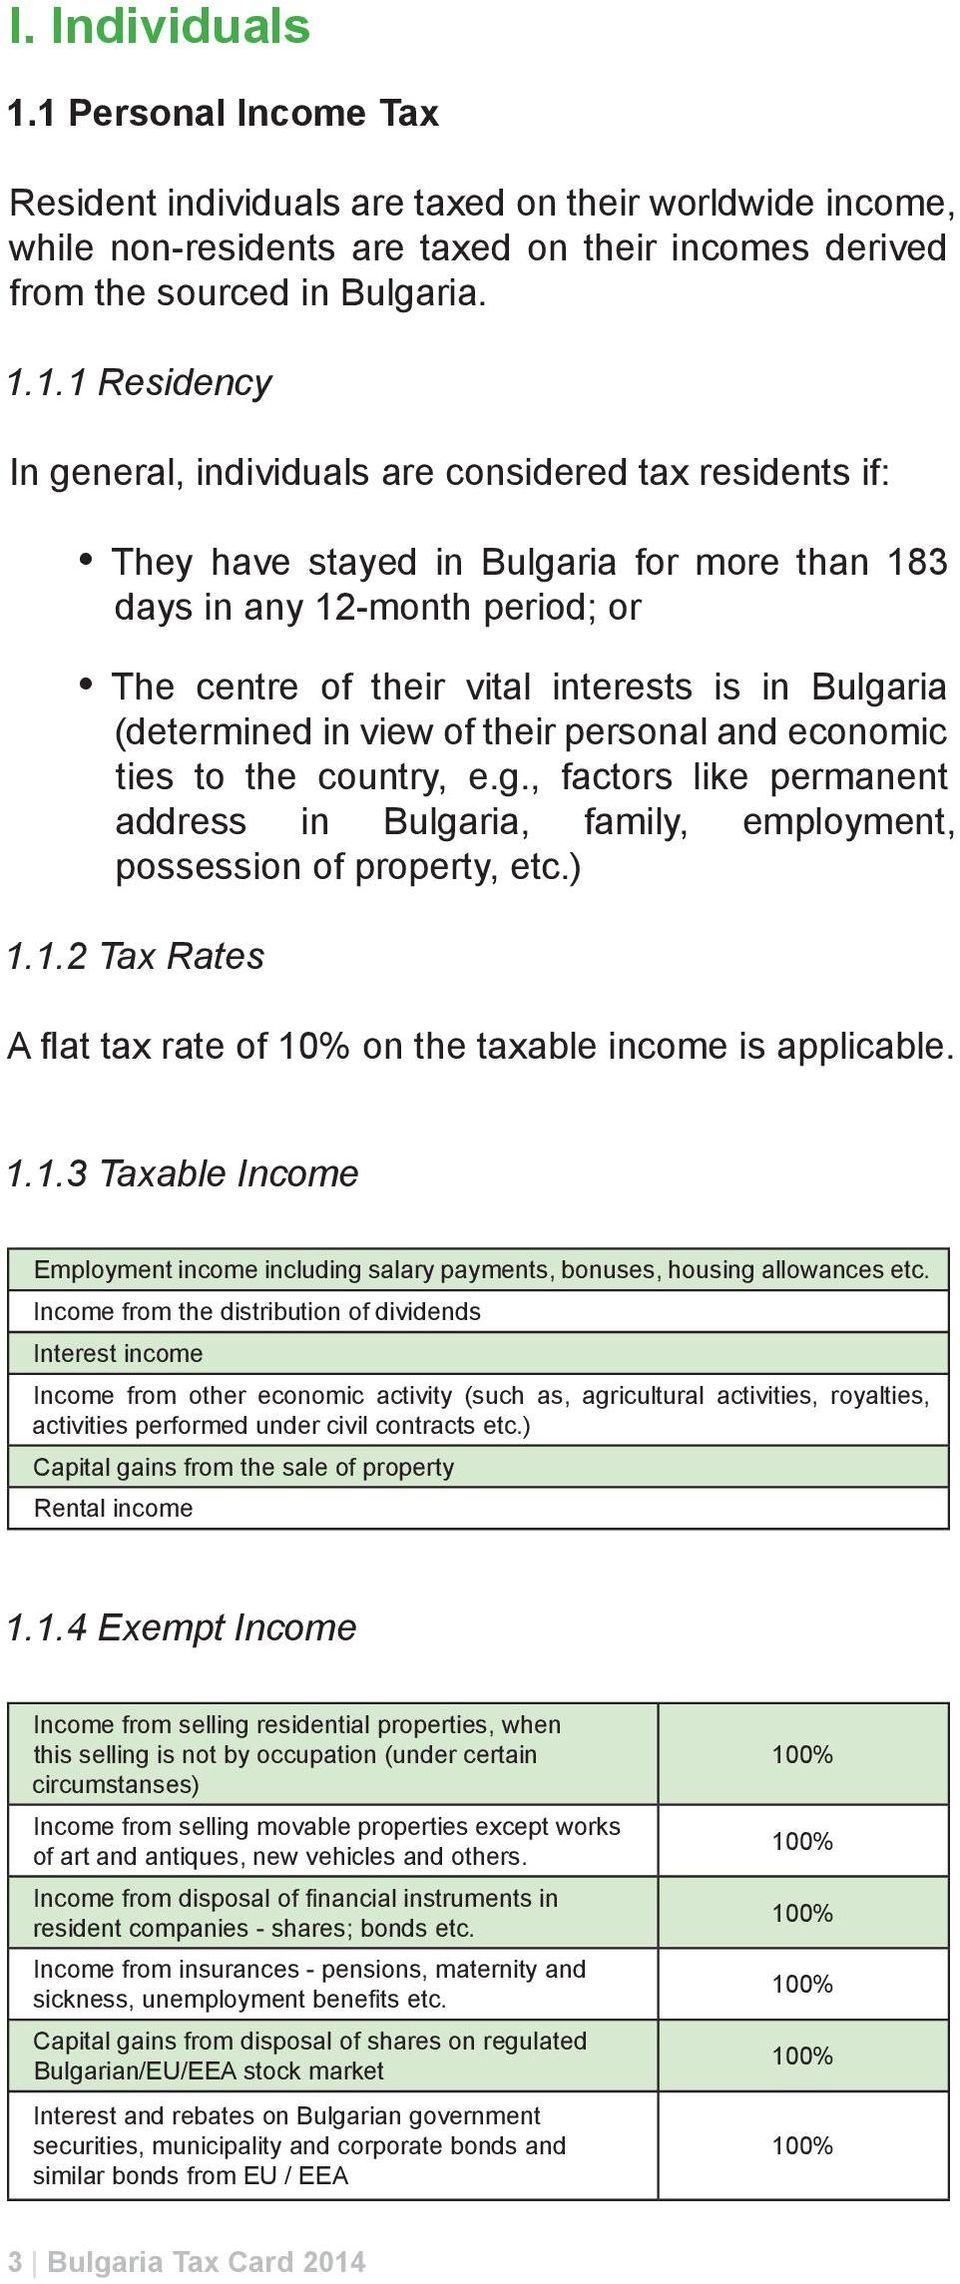 individuals are considered tax residents if: They have stayed in Bulgaria for more than 183 days in any 12-month period; or The centre of their vital interests is in Bulgaria (determined in view of